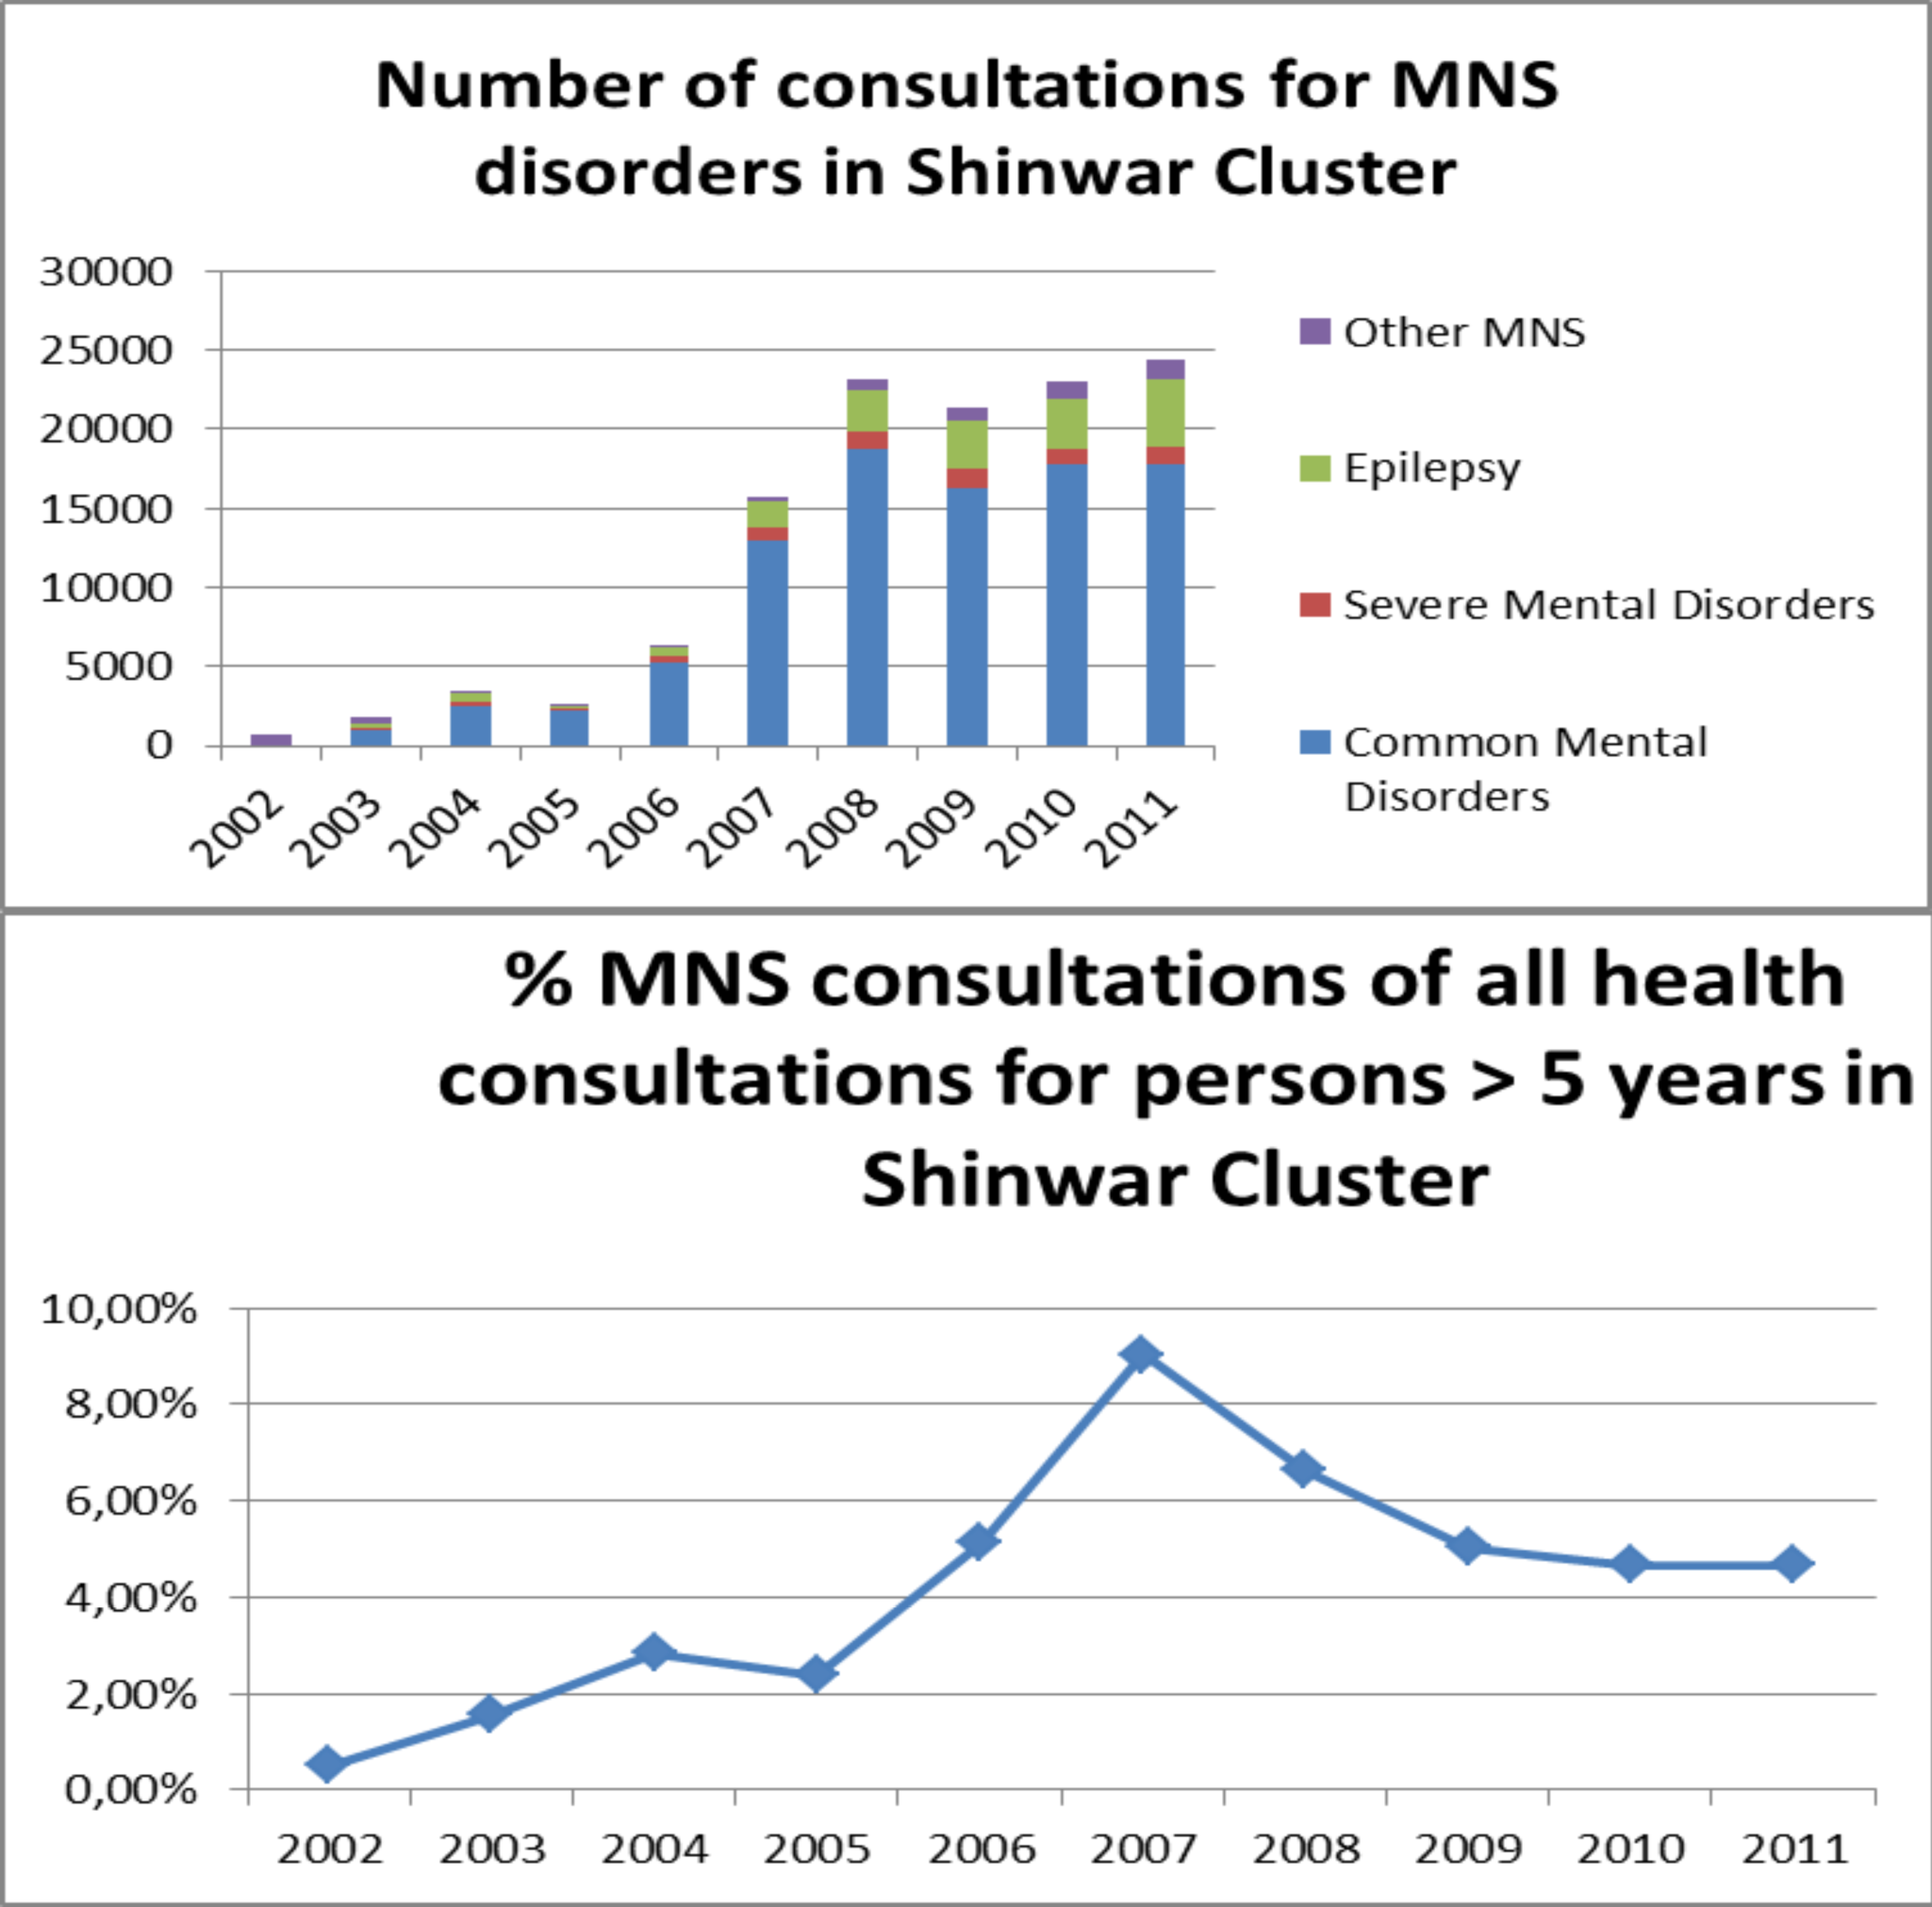 Annual consultations for CMDs, SMDs, and epilepsy and their percentage of all health consultations in the Shinwar cluster (2002–2011).